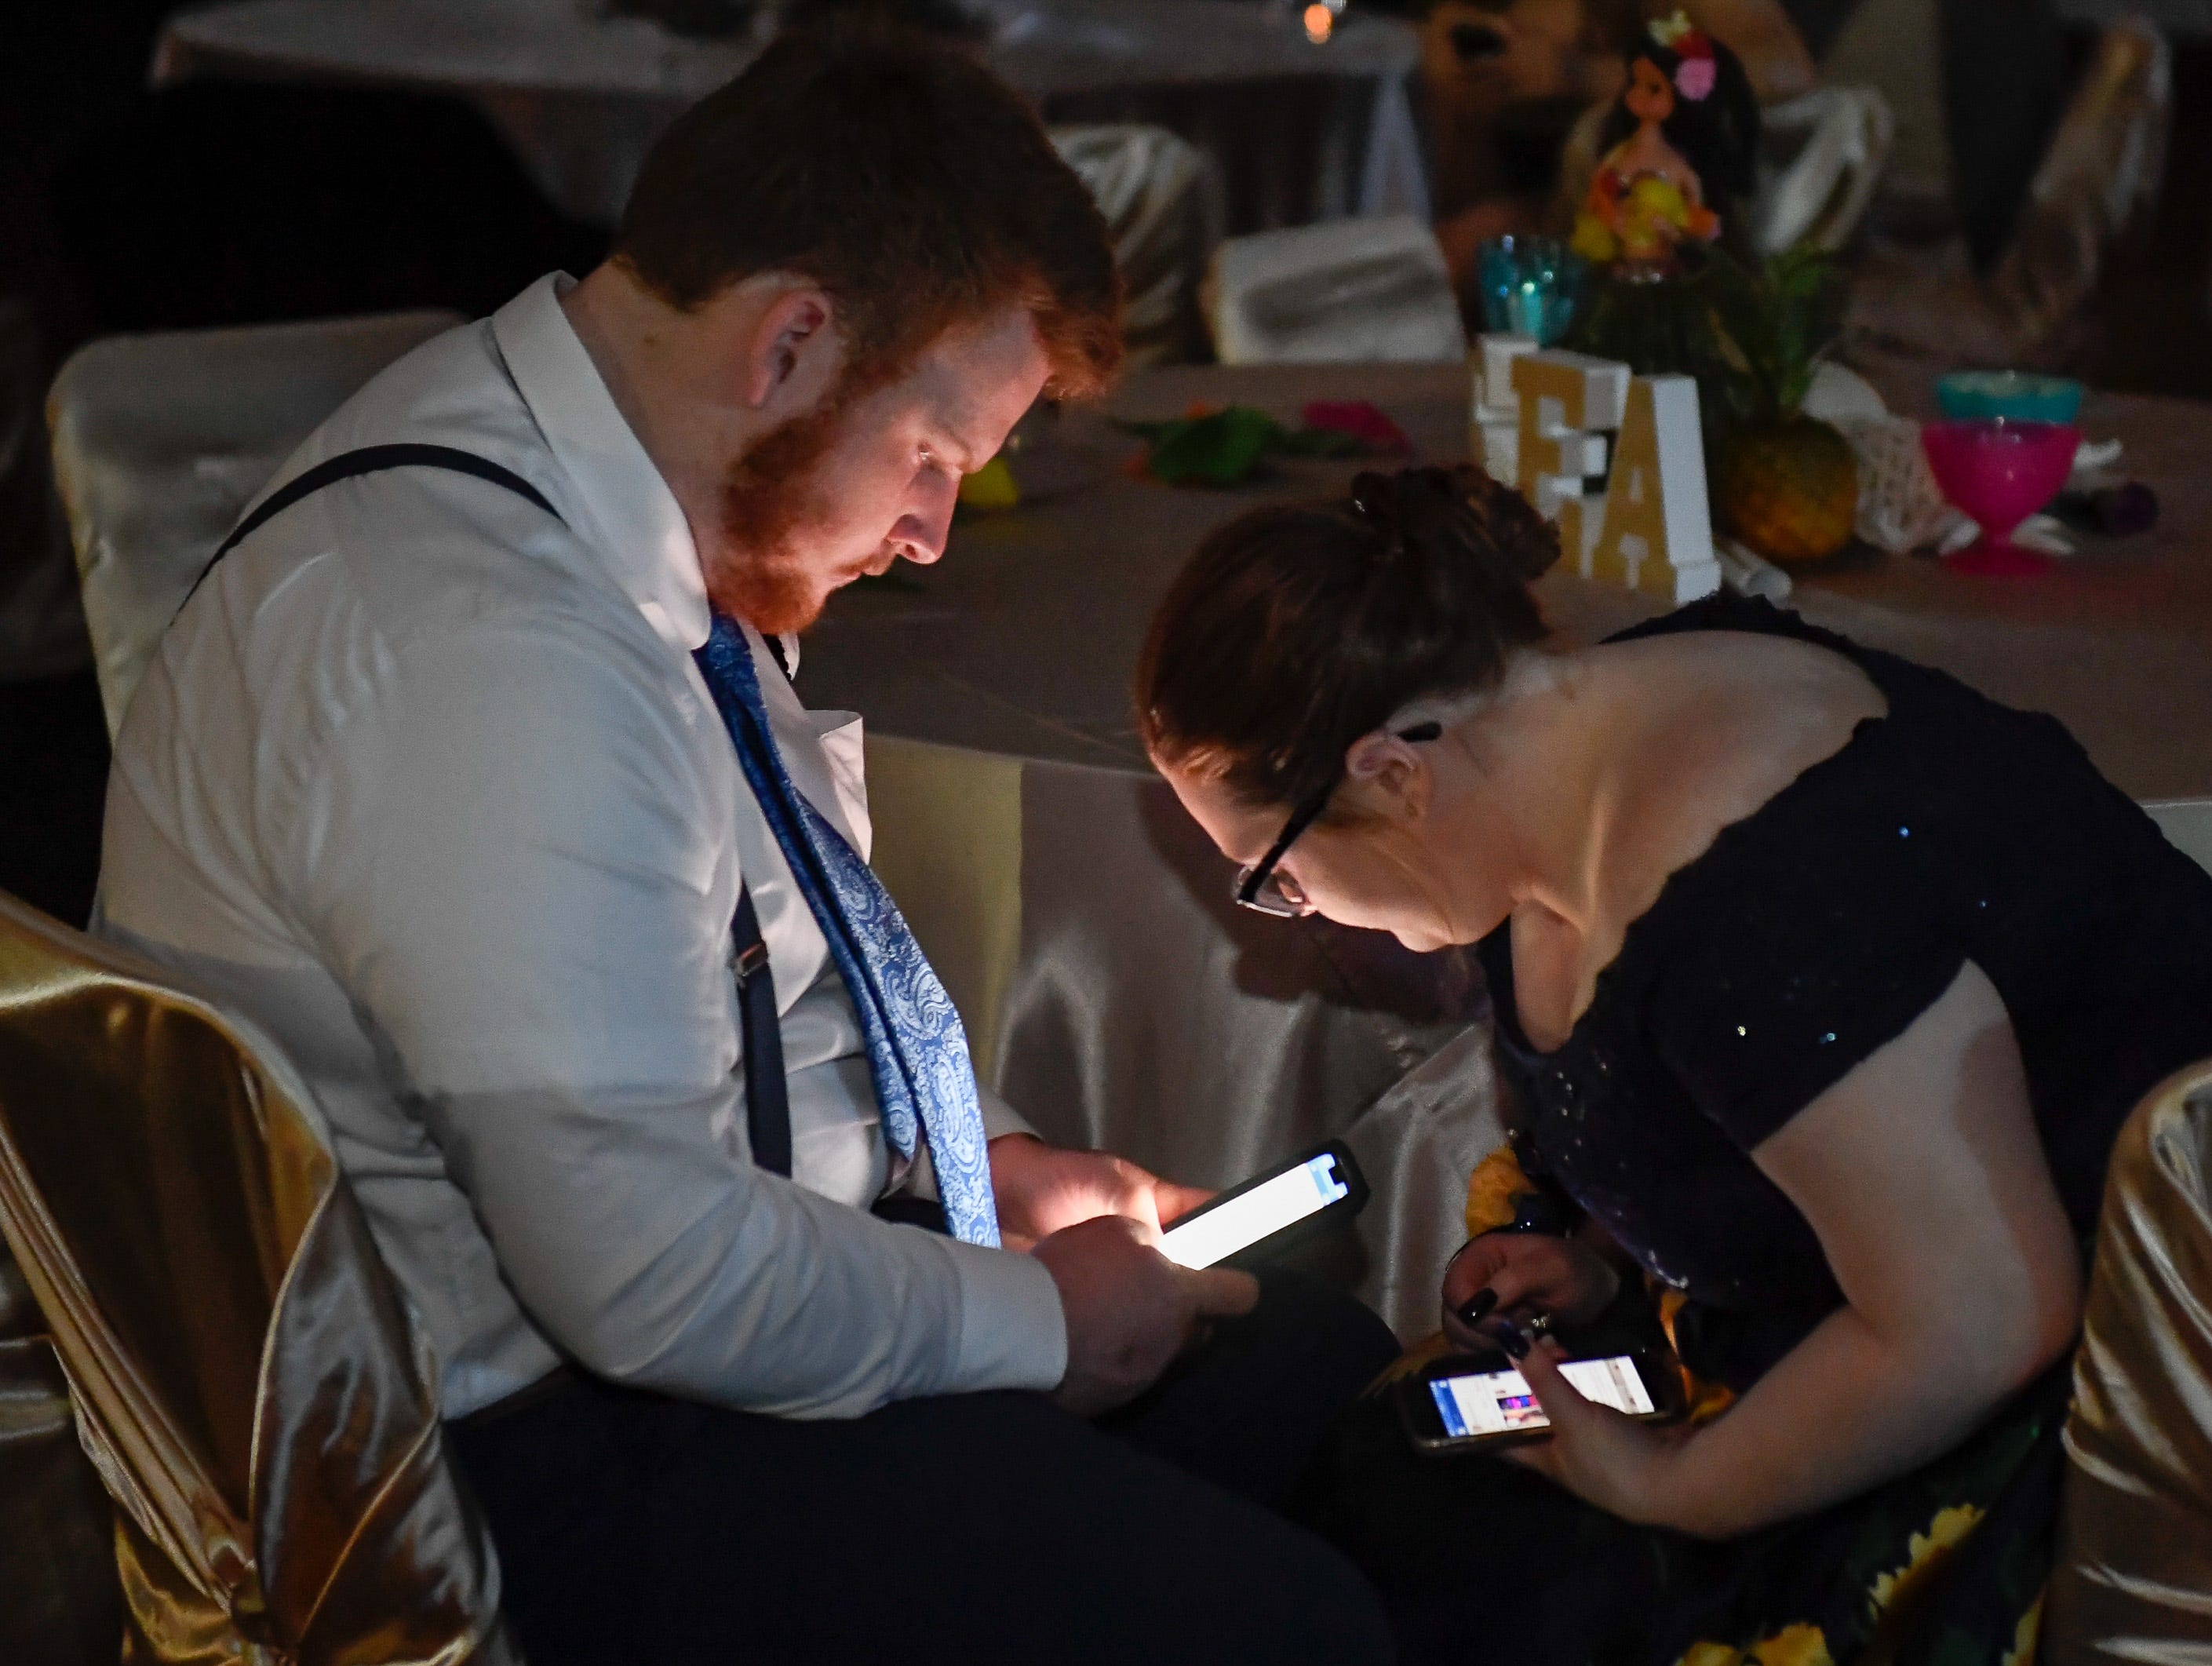 Michael Duncan and Kelsey Whitaker check their phones at the Castle High School prom, held at the Old National Events Center Plaza Saturday, April 27, 2019.